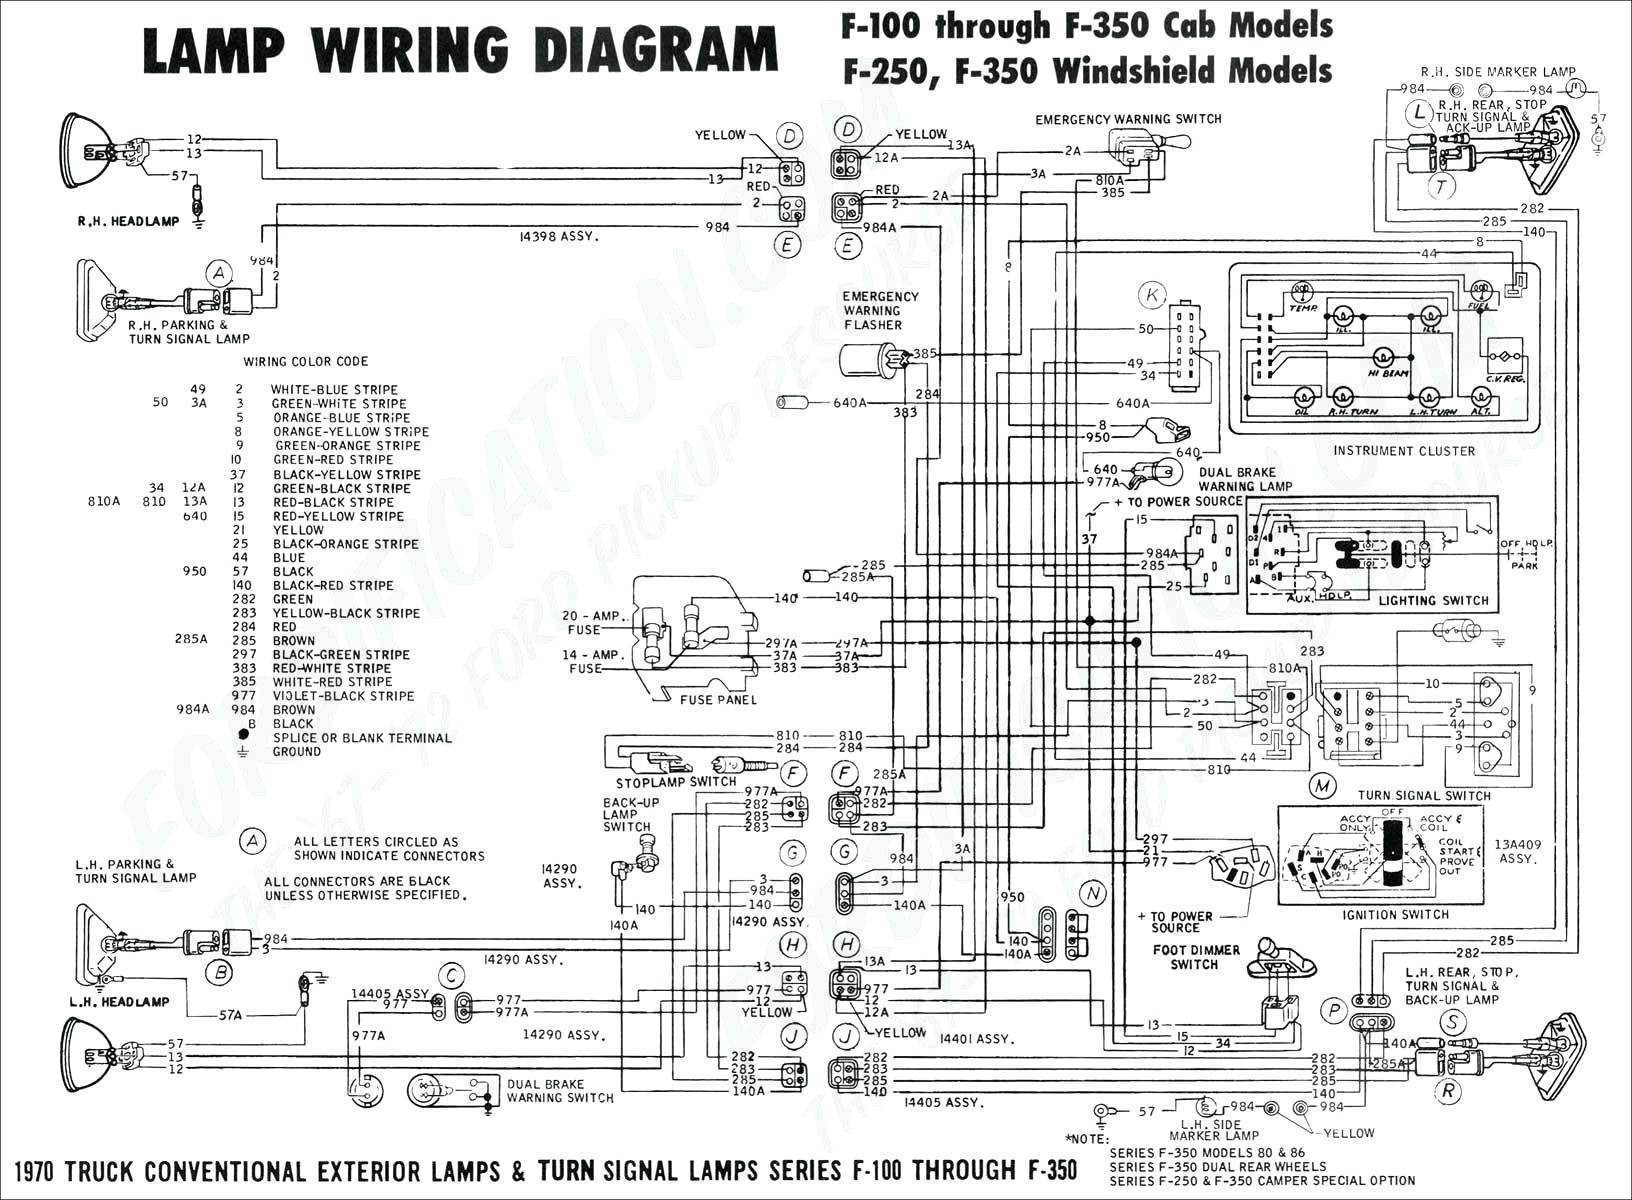 Ram Parking Lamp Circut Diagram